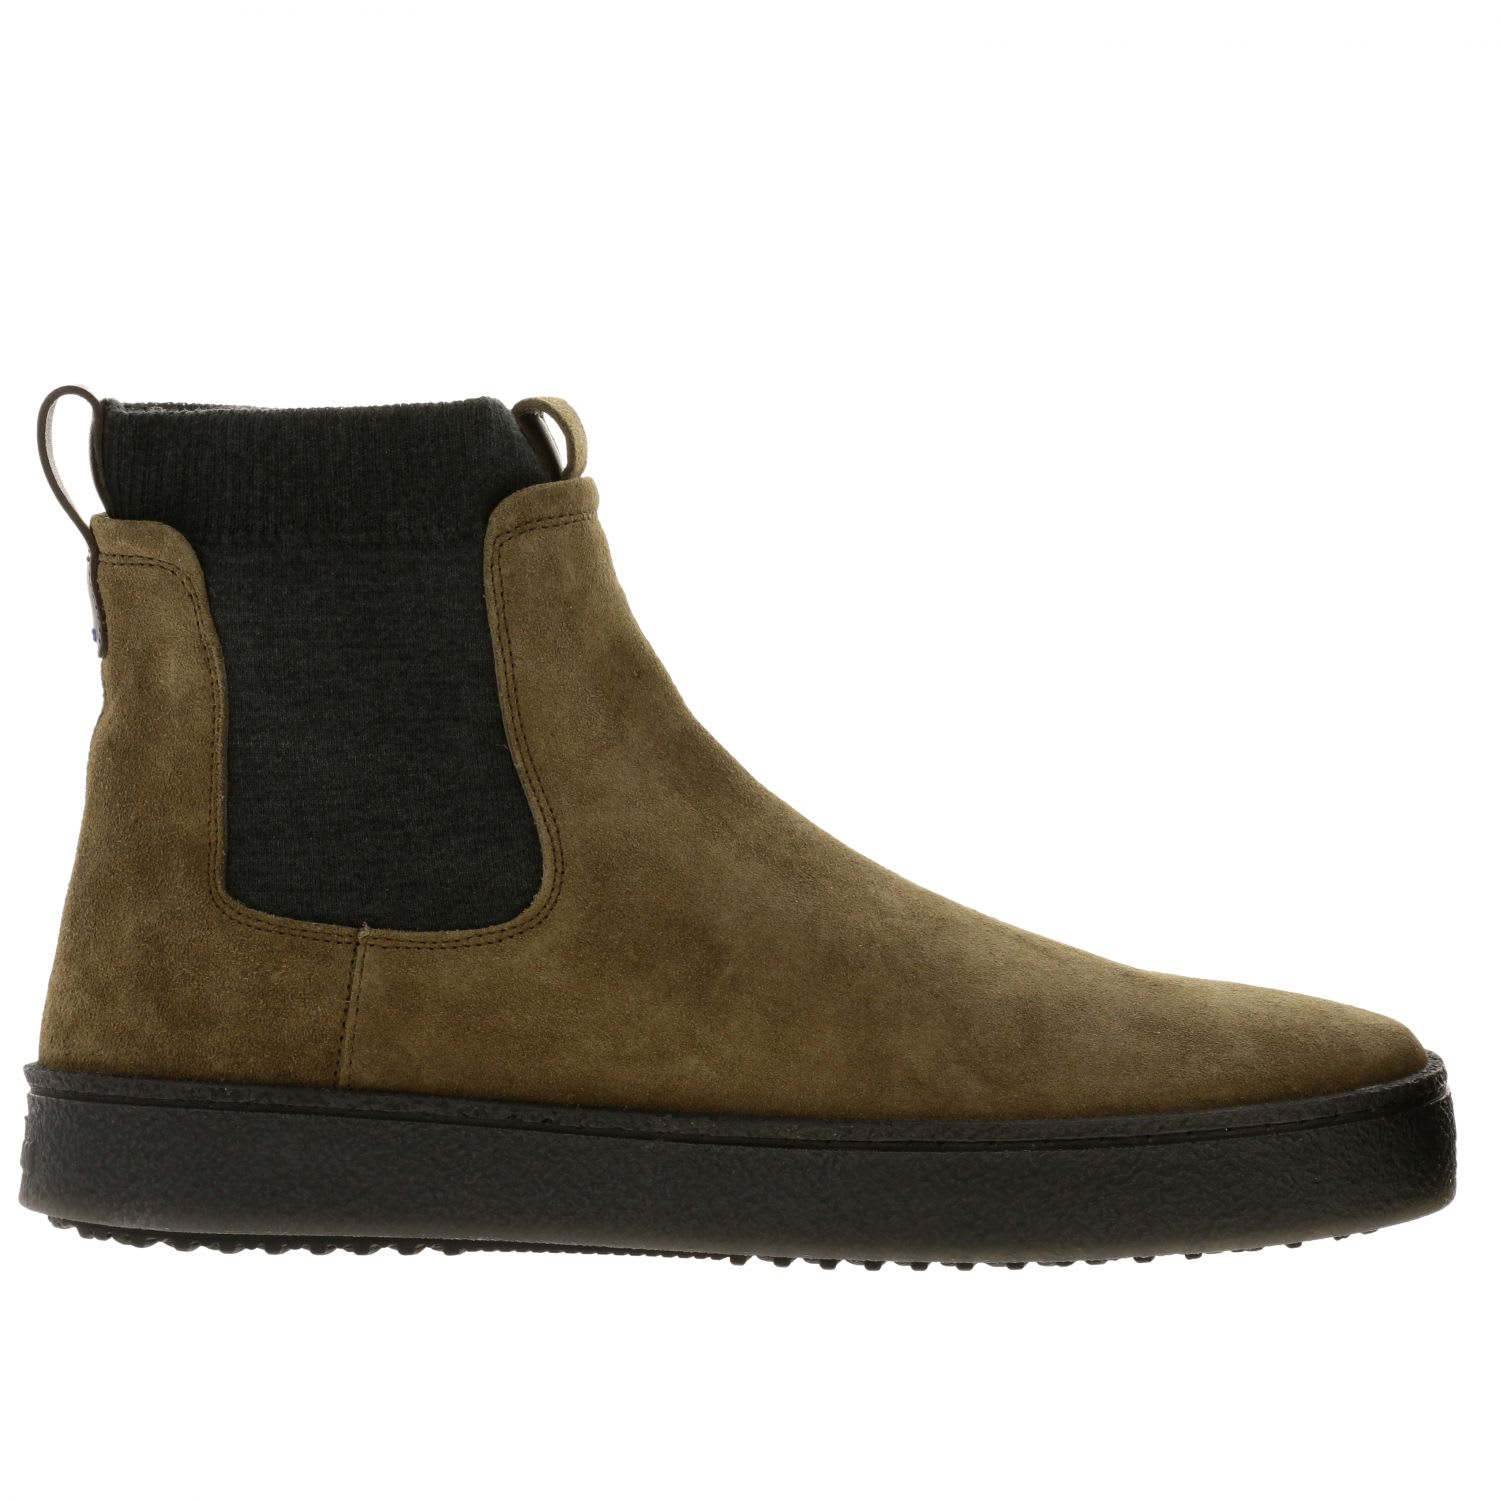 Hogan Boots Chelsea Hogan 476 Casual Sneakers In Suede With Wool Sock